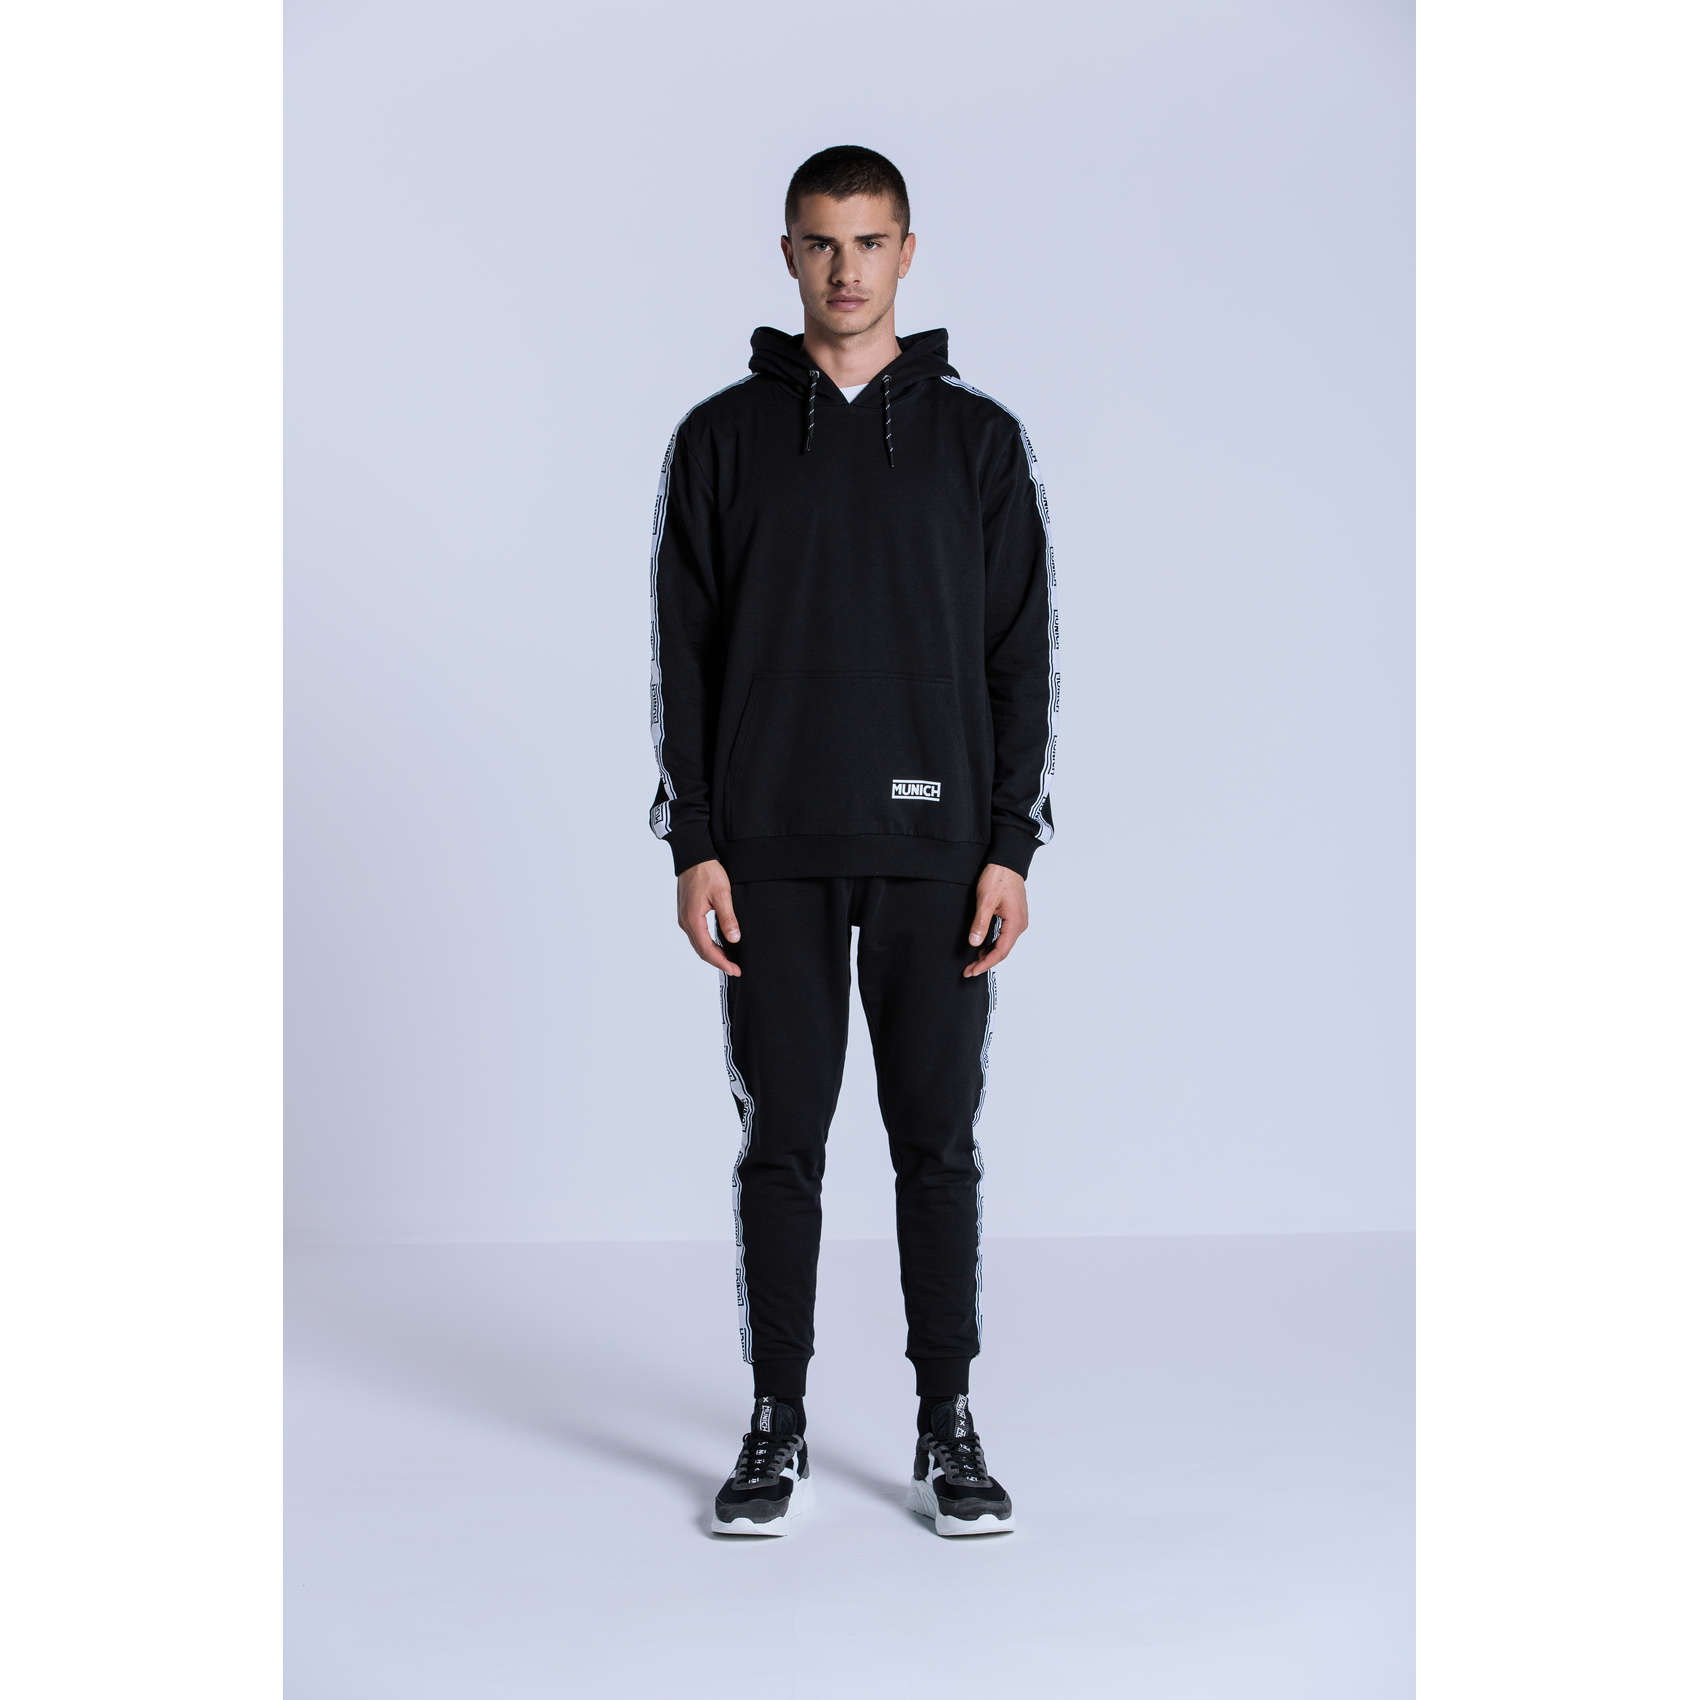 DESSUADORA FLEECE BLACK